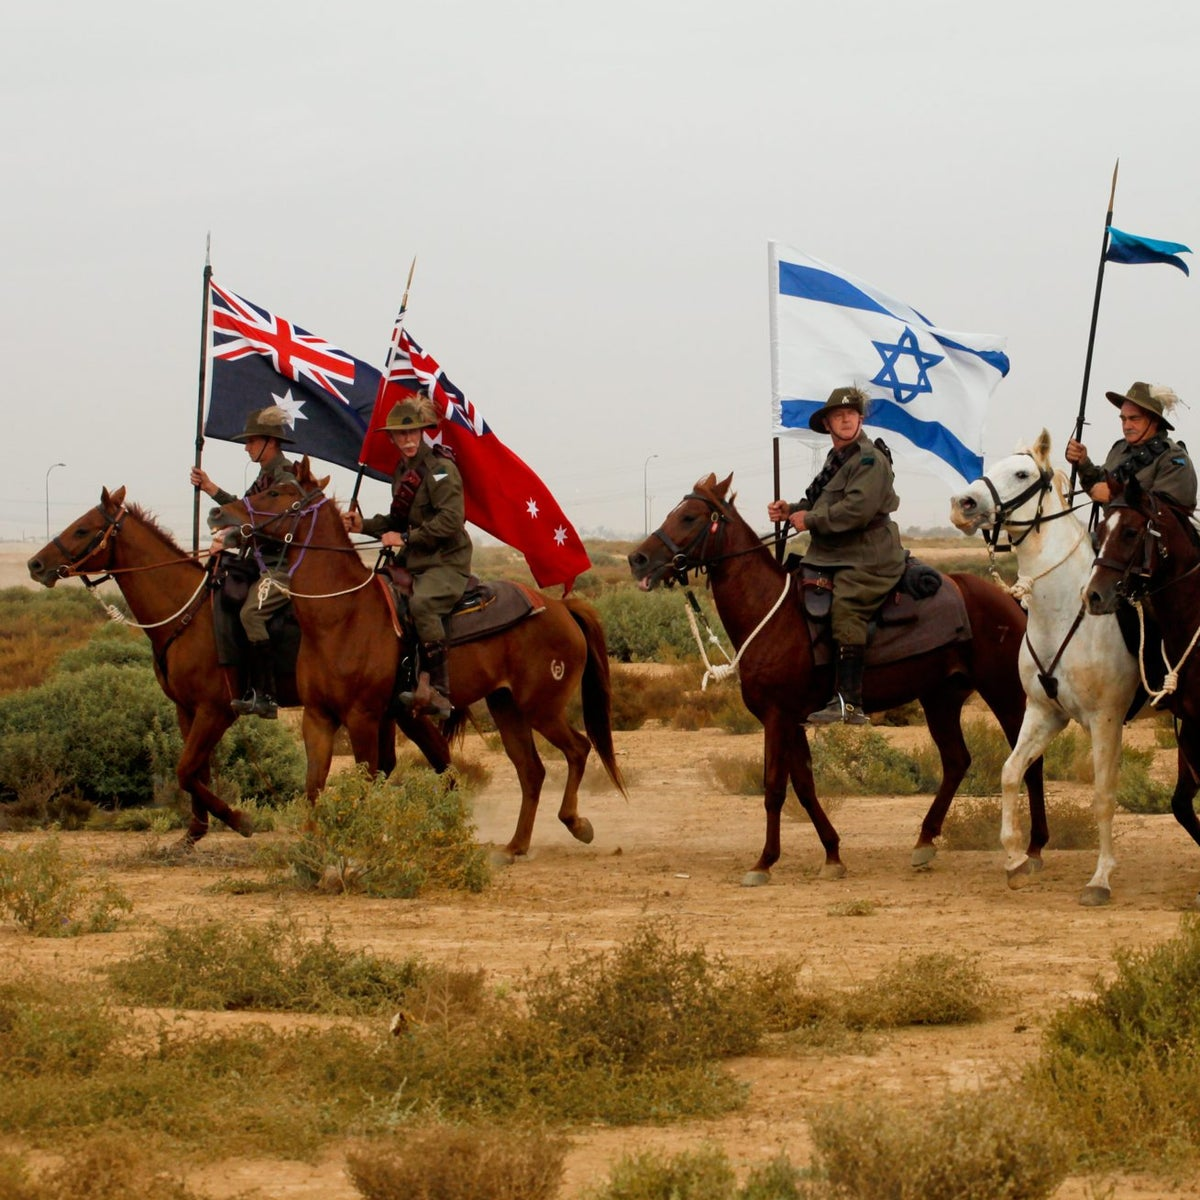 The reenactment marking 95 years in 2012.